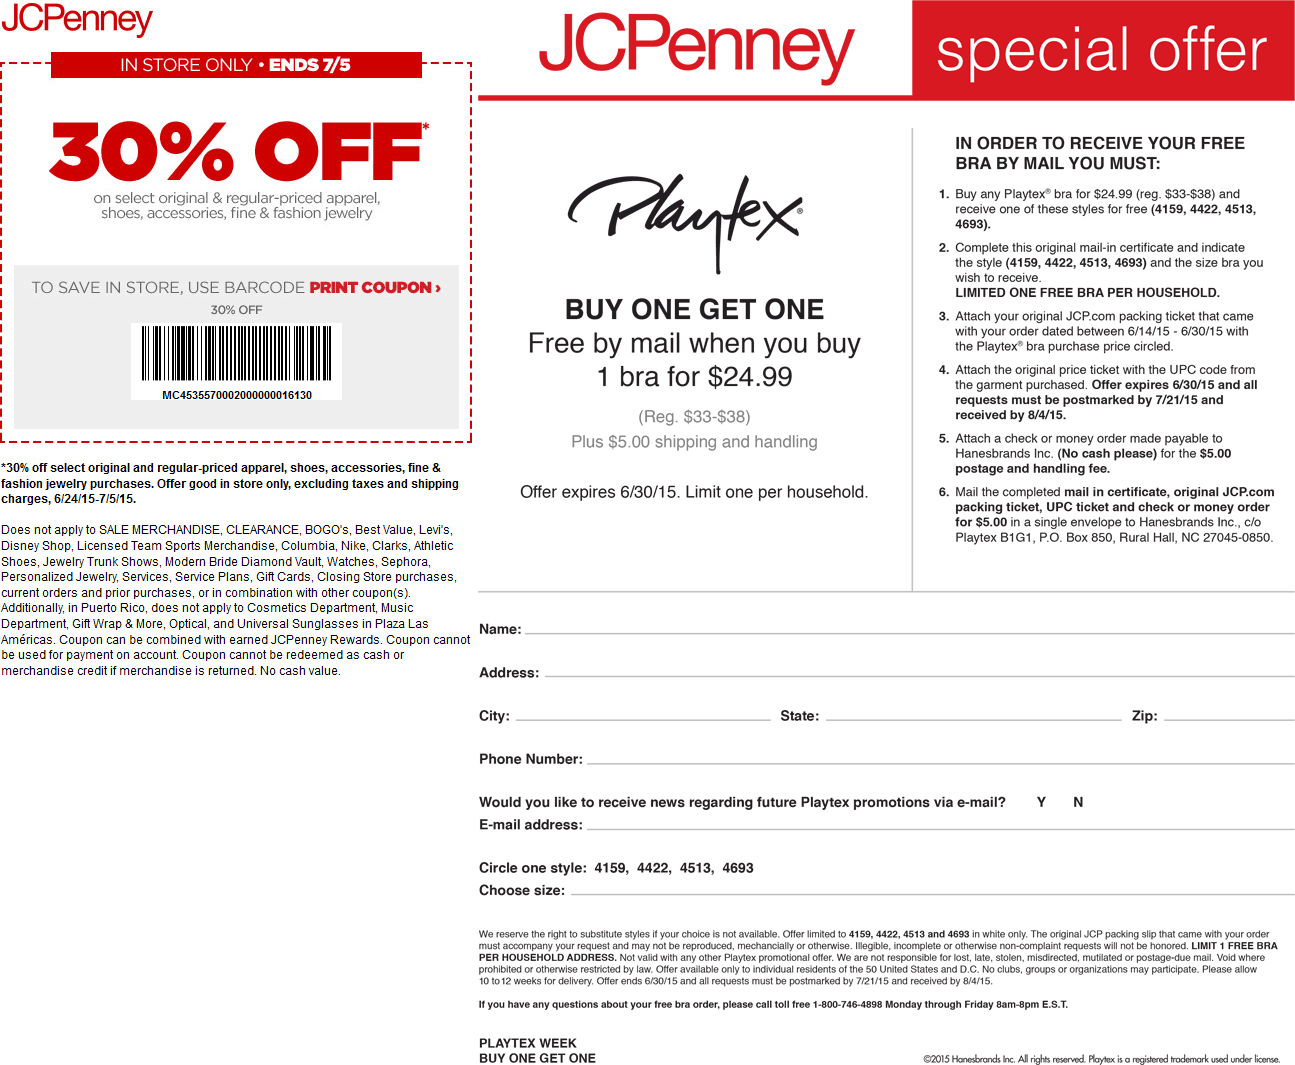 JCPenney Coupon February 2019 30% off at JCPenney - also second bra $5 by mail